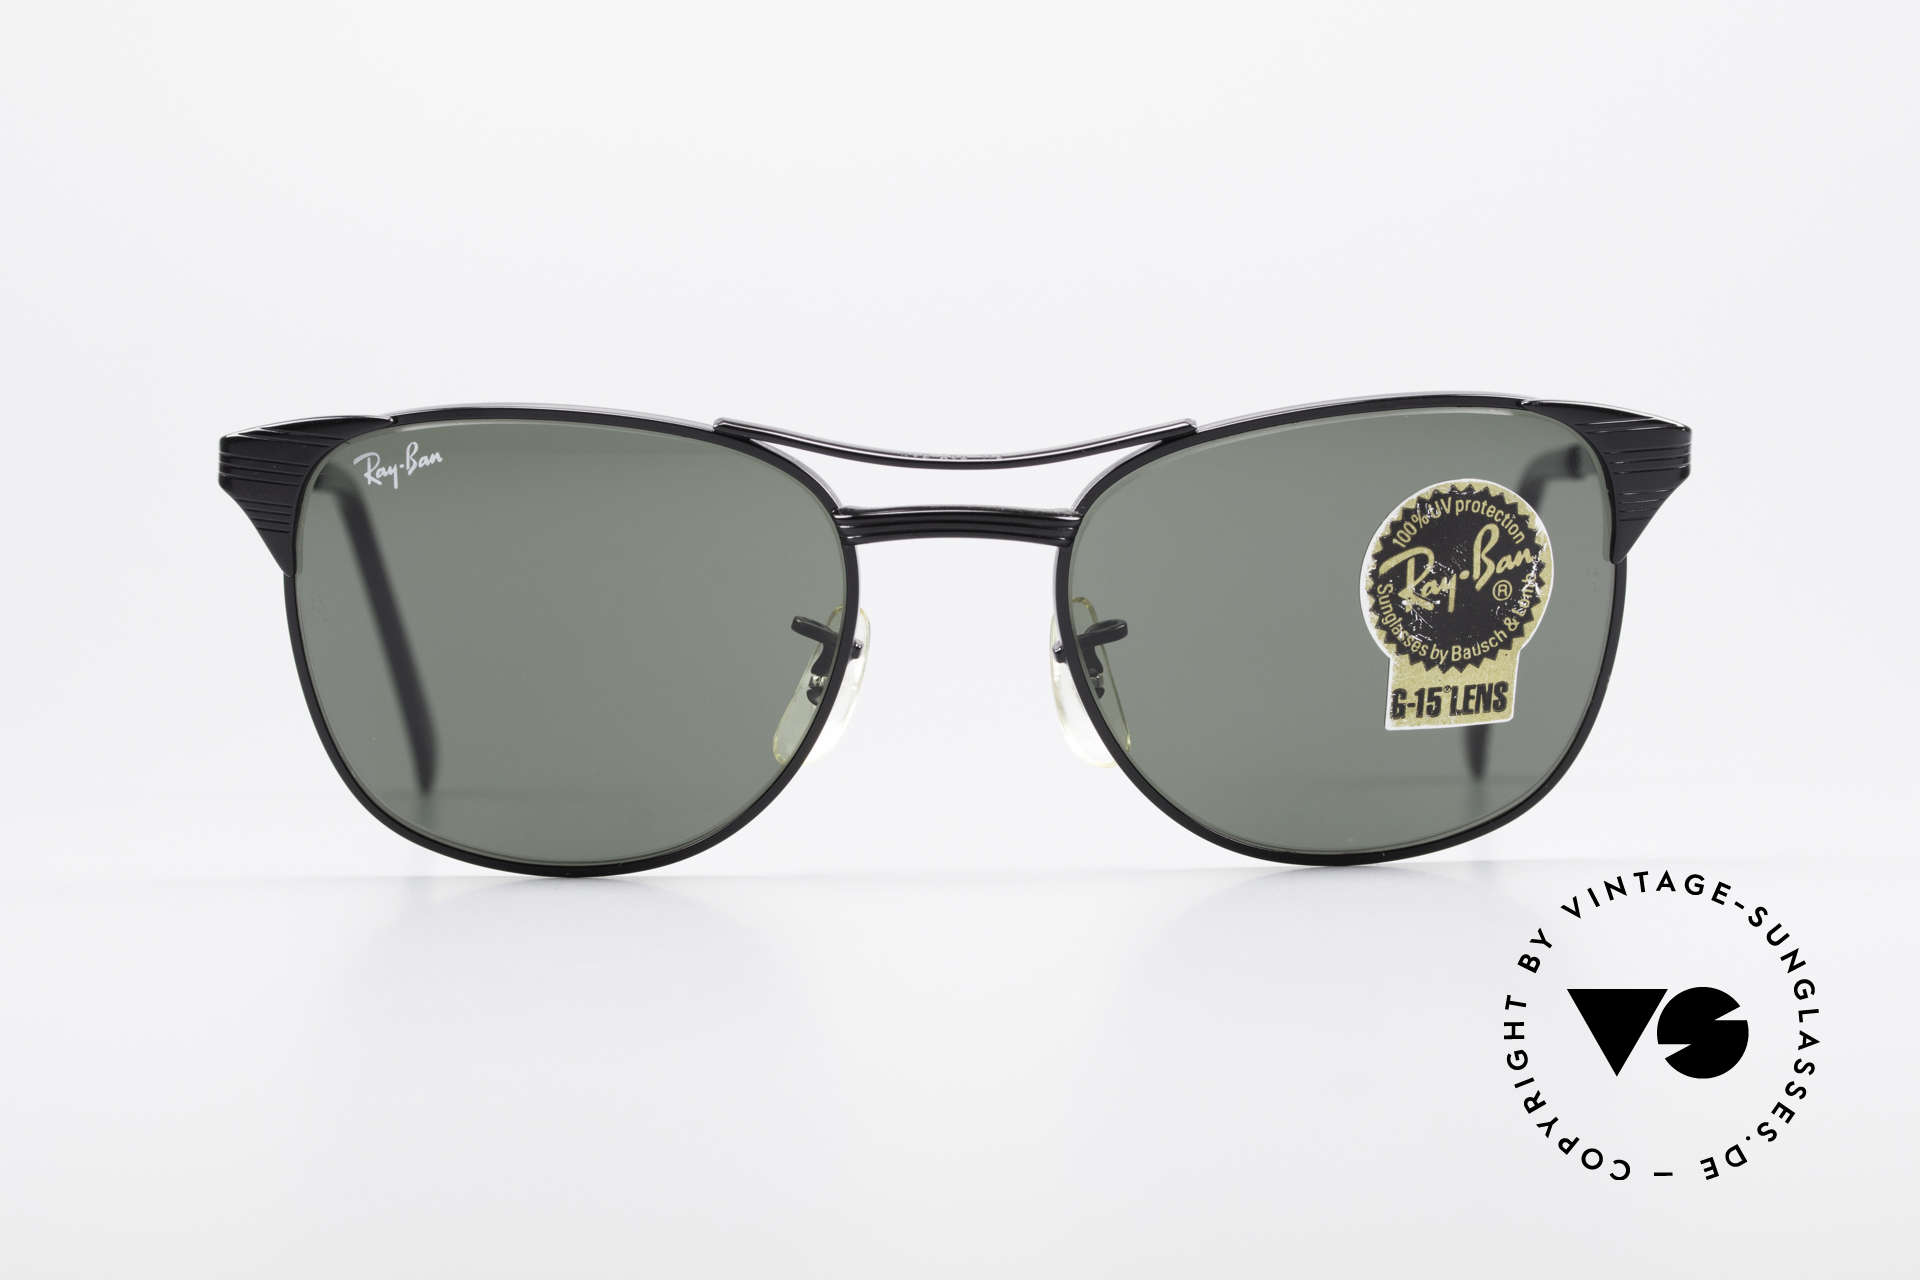 Sunglasses Ray Ban Signet Old Usa B L Ray Ban Shades Also, because nicholson is a massive los angeles lakers fan, attending every home game, his shooting schedule has to revolve around the lakers' schedule. ray ban signet old usa b l ray ban shades